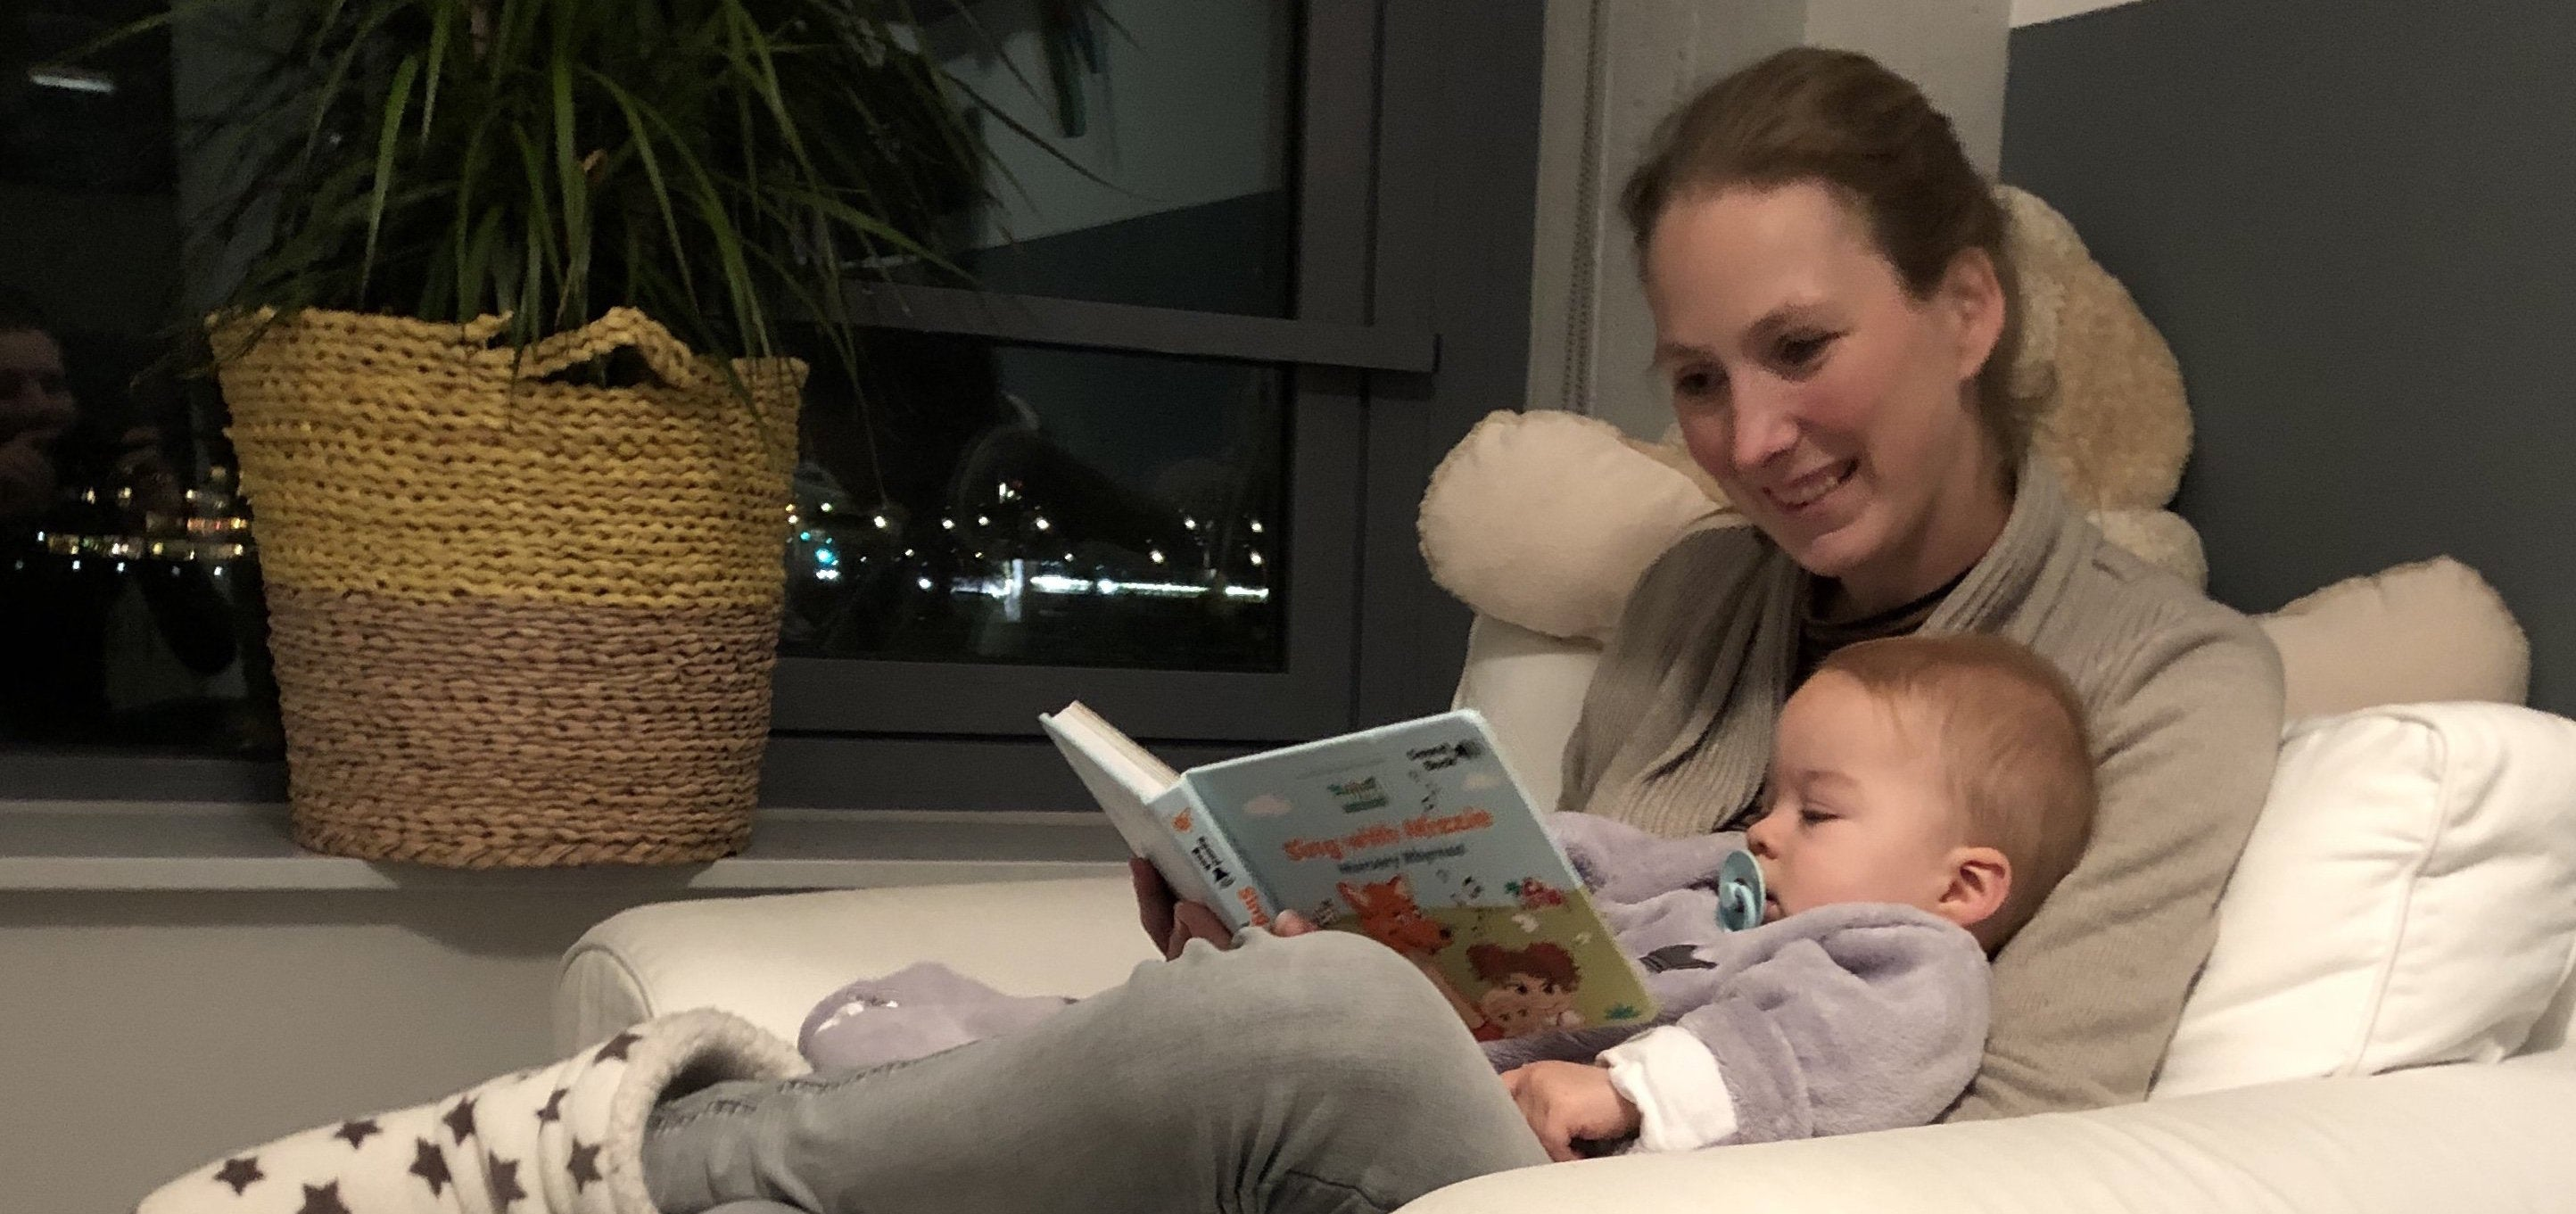 Mom reading to a baby, bedtime reading